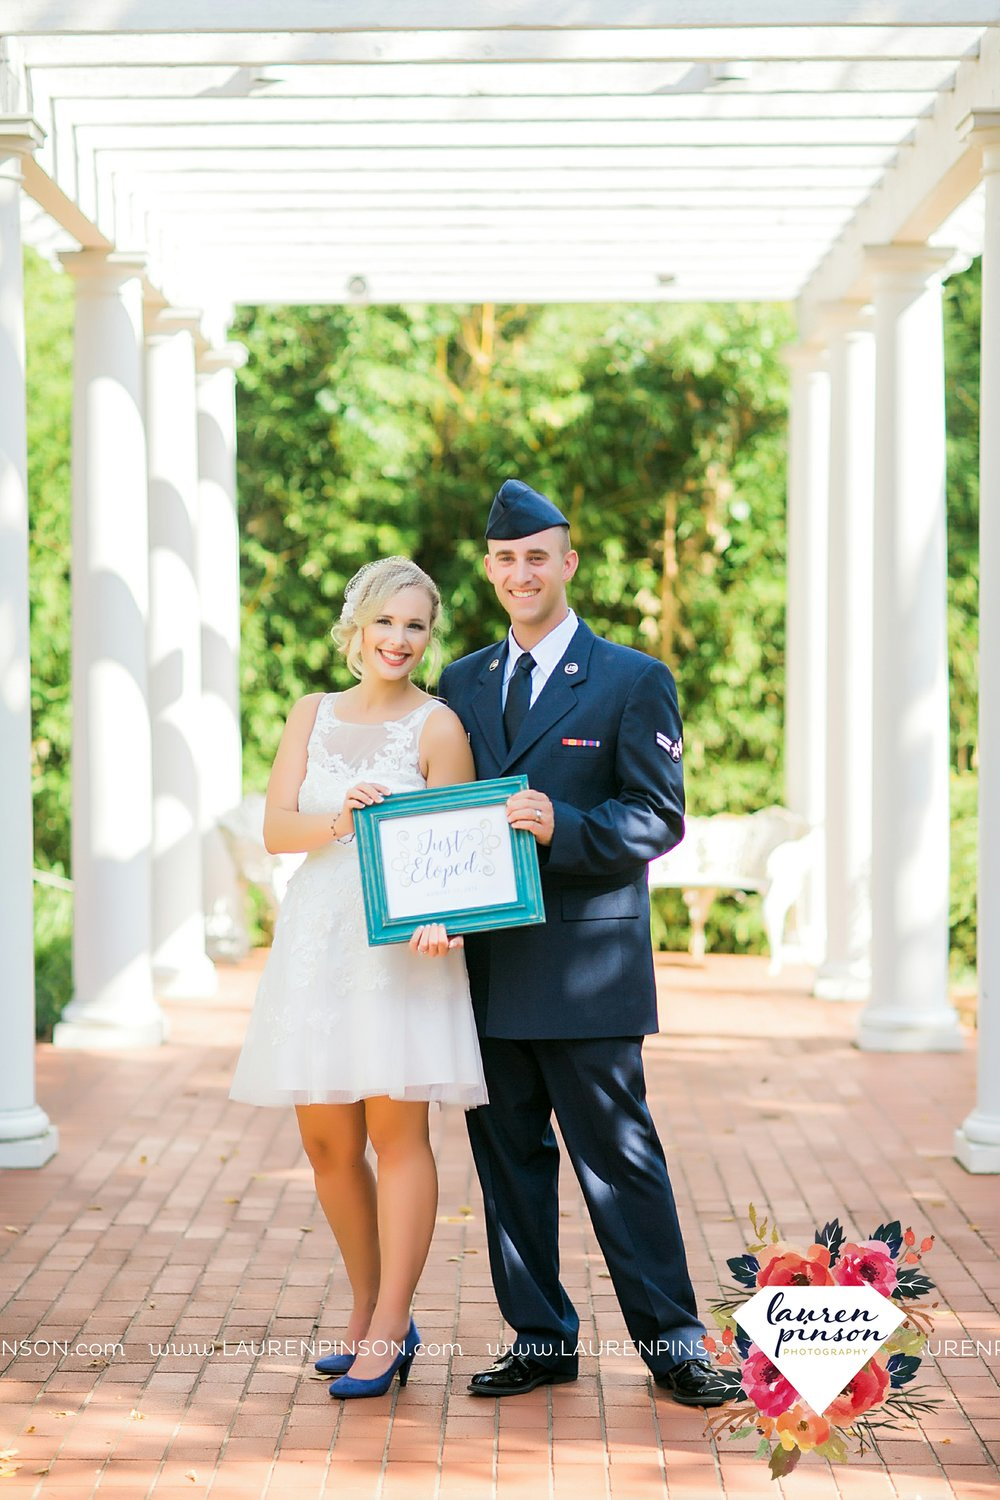 sheppard-afb-wichita-falls-texas-elopement-courthouse-wedding-photographer-justice-of-the-peace-judge-little-ceremony_3285.jpg